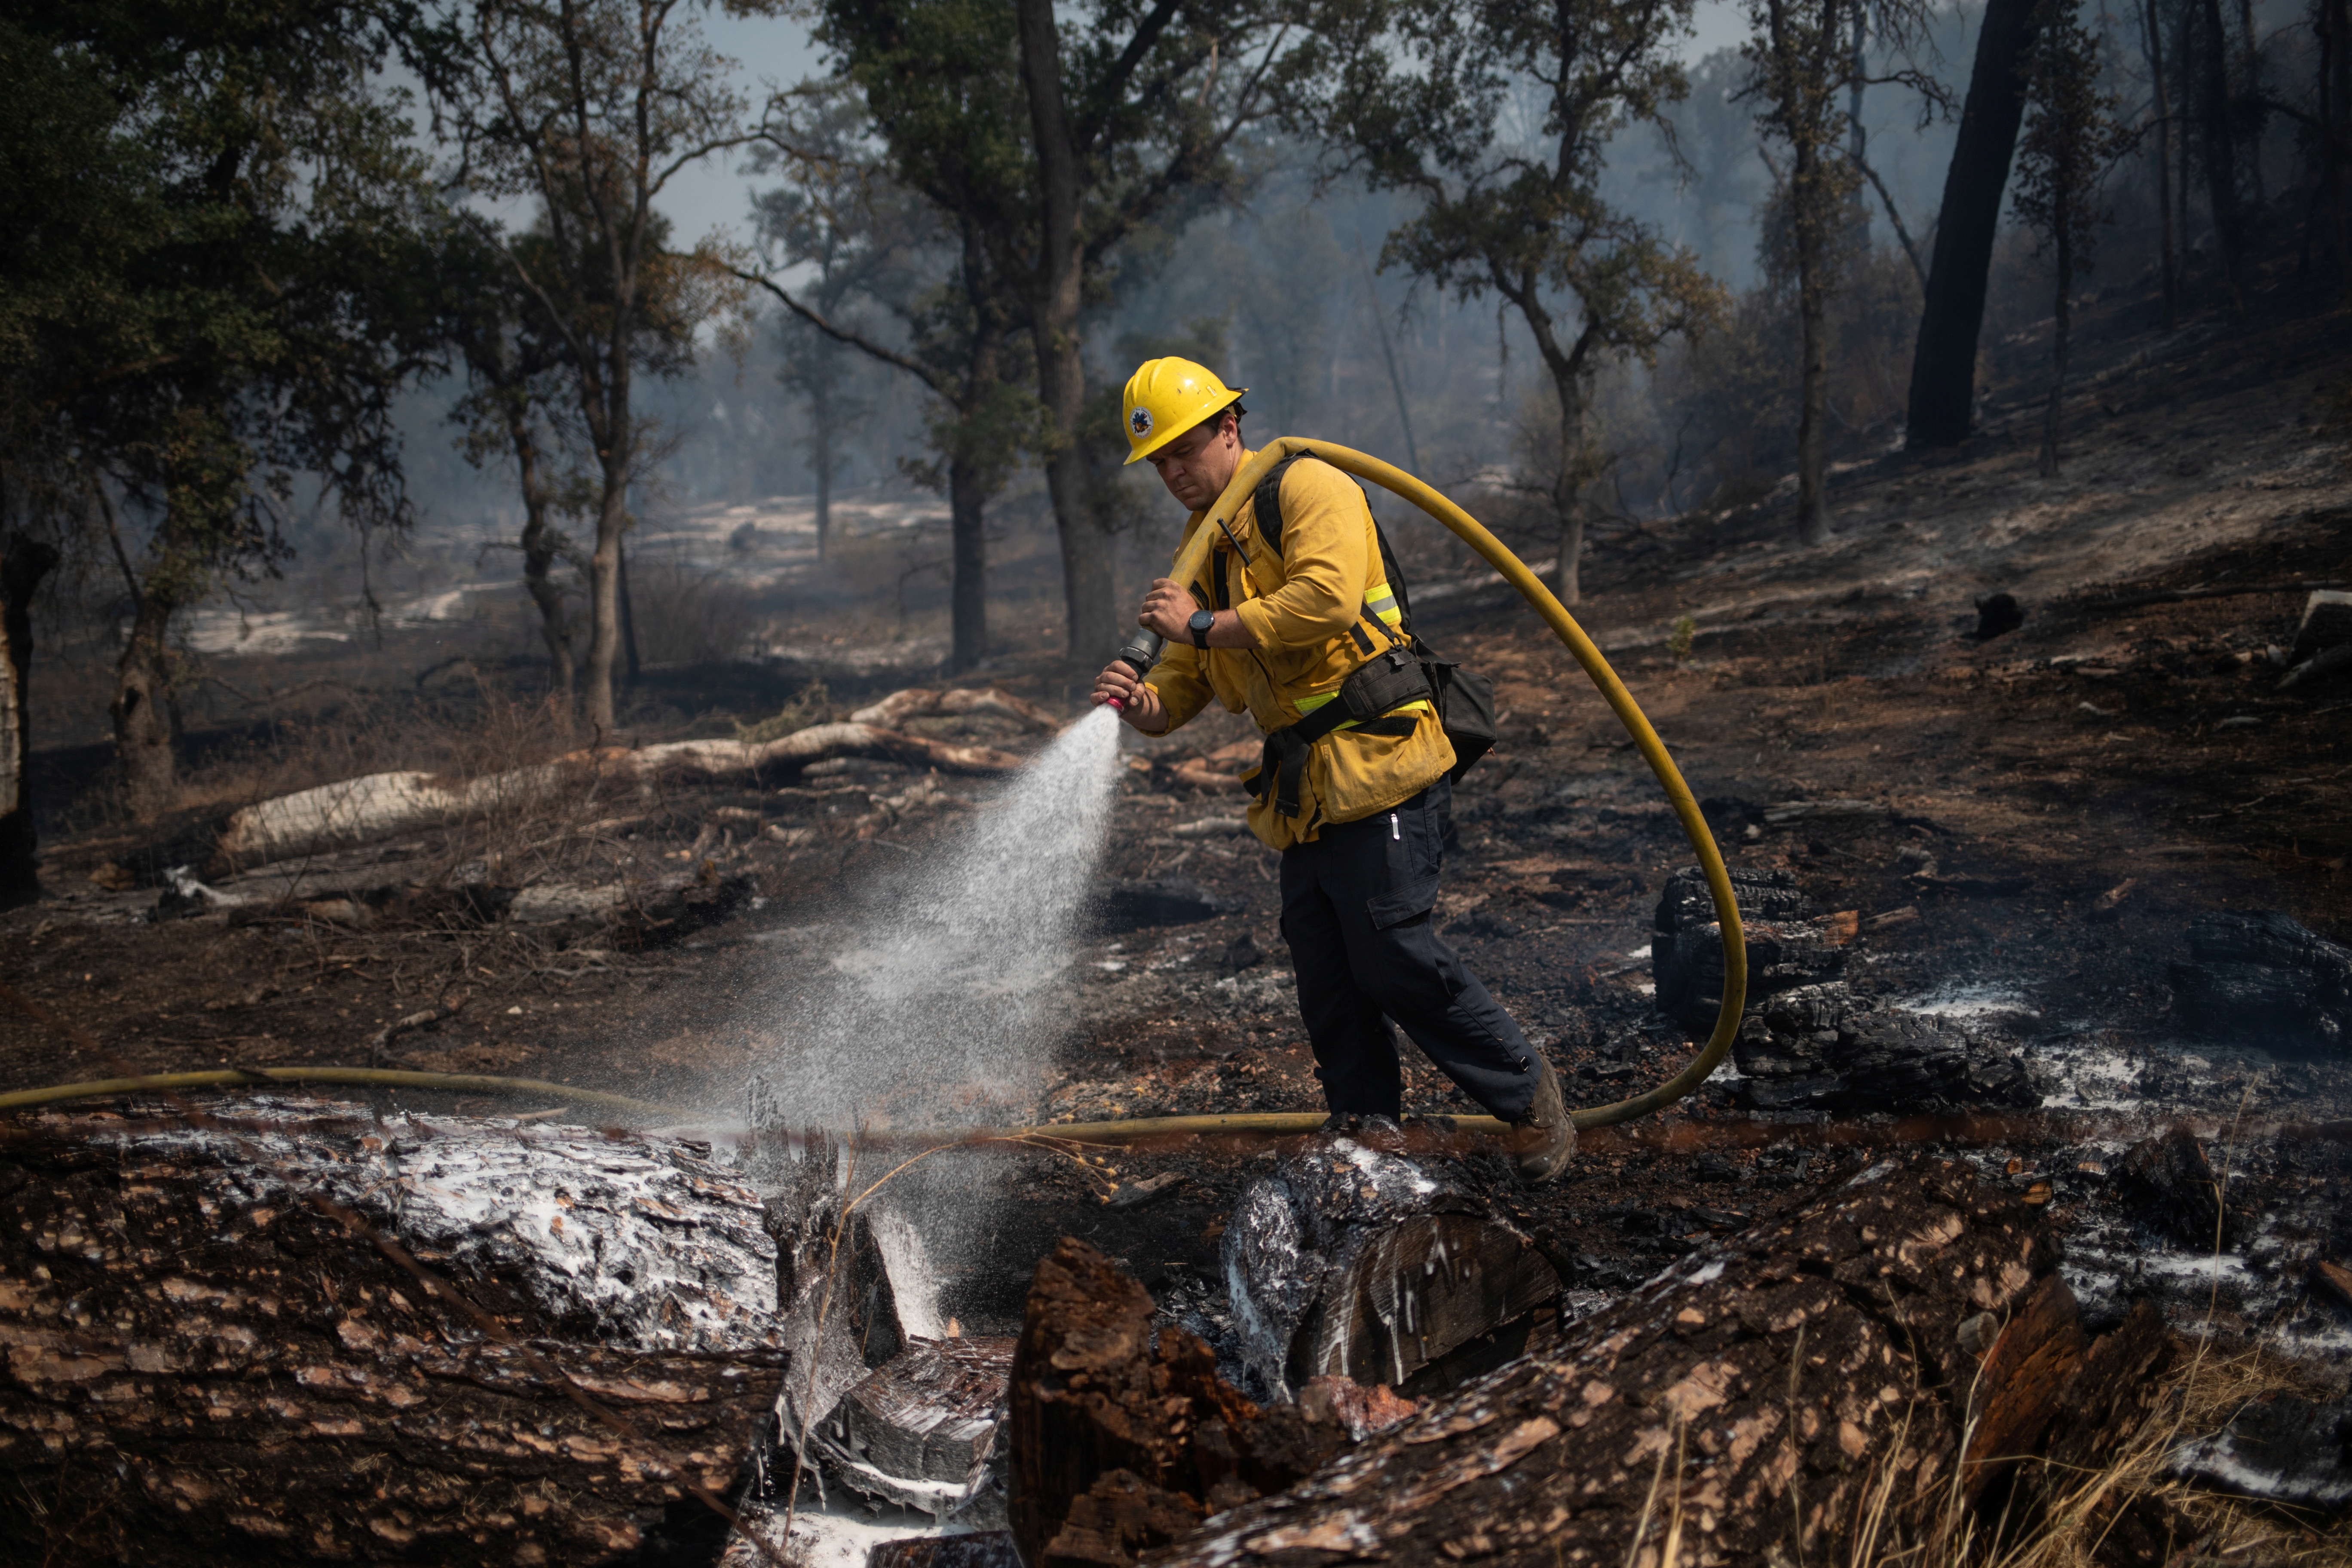 Ventura County firefighter Tommy Minadeo mops up the LNU Lightning Complex Fire in Pope Valley, California, U.S. August 23, 2020. REUTERS/Adrees Latif - RC2ZJI9ZXCFW